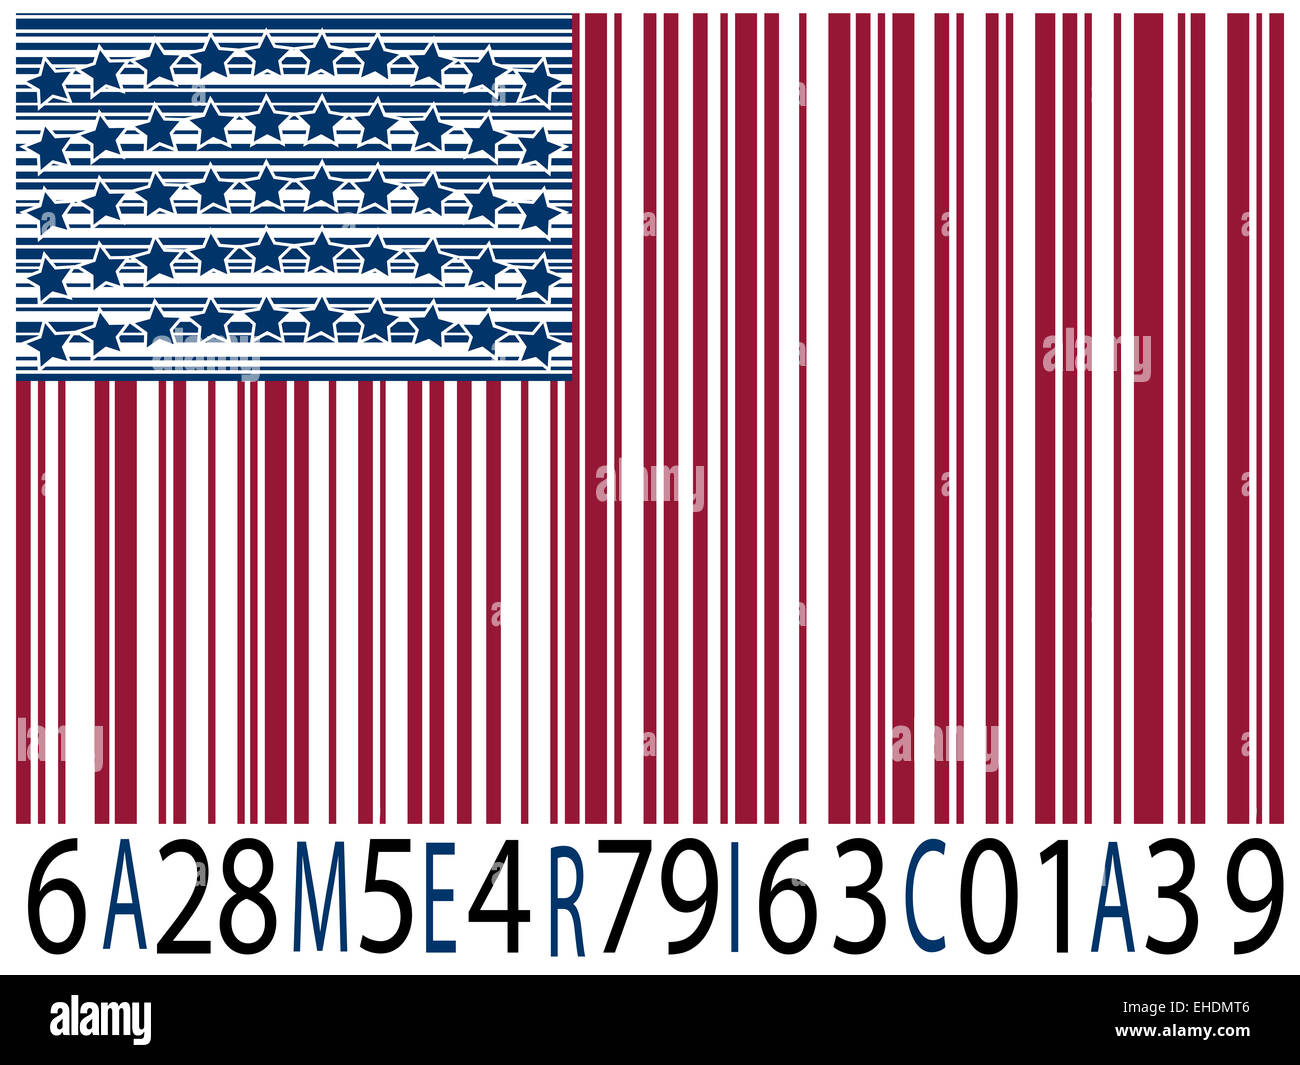 america bar codes flag - Stock Image